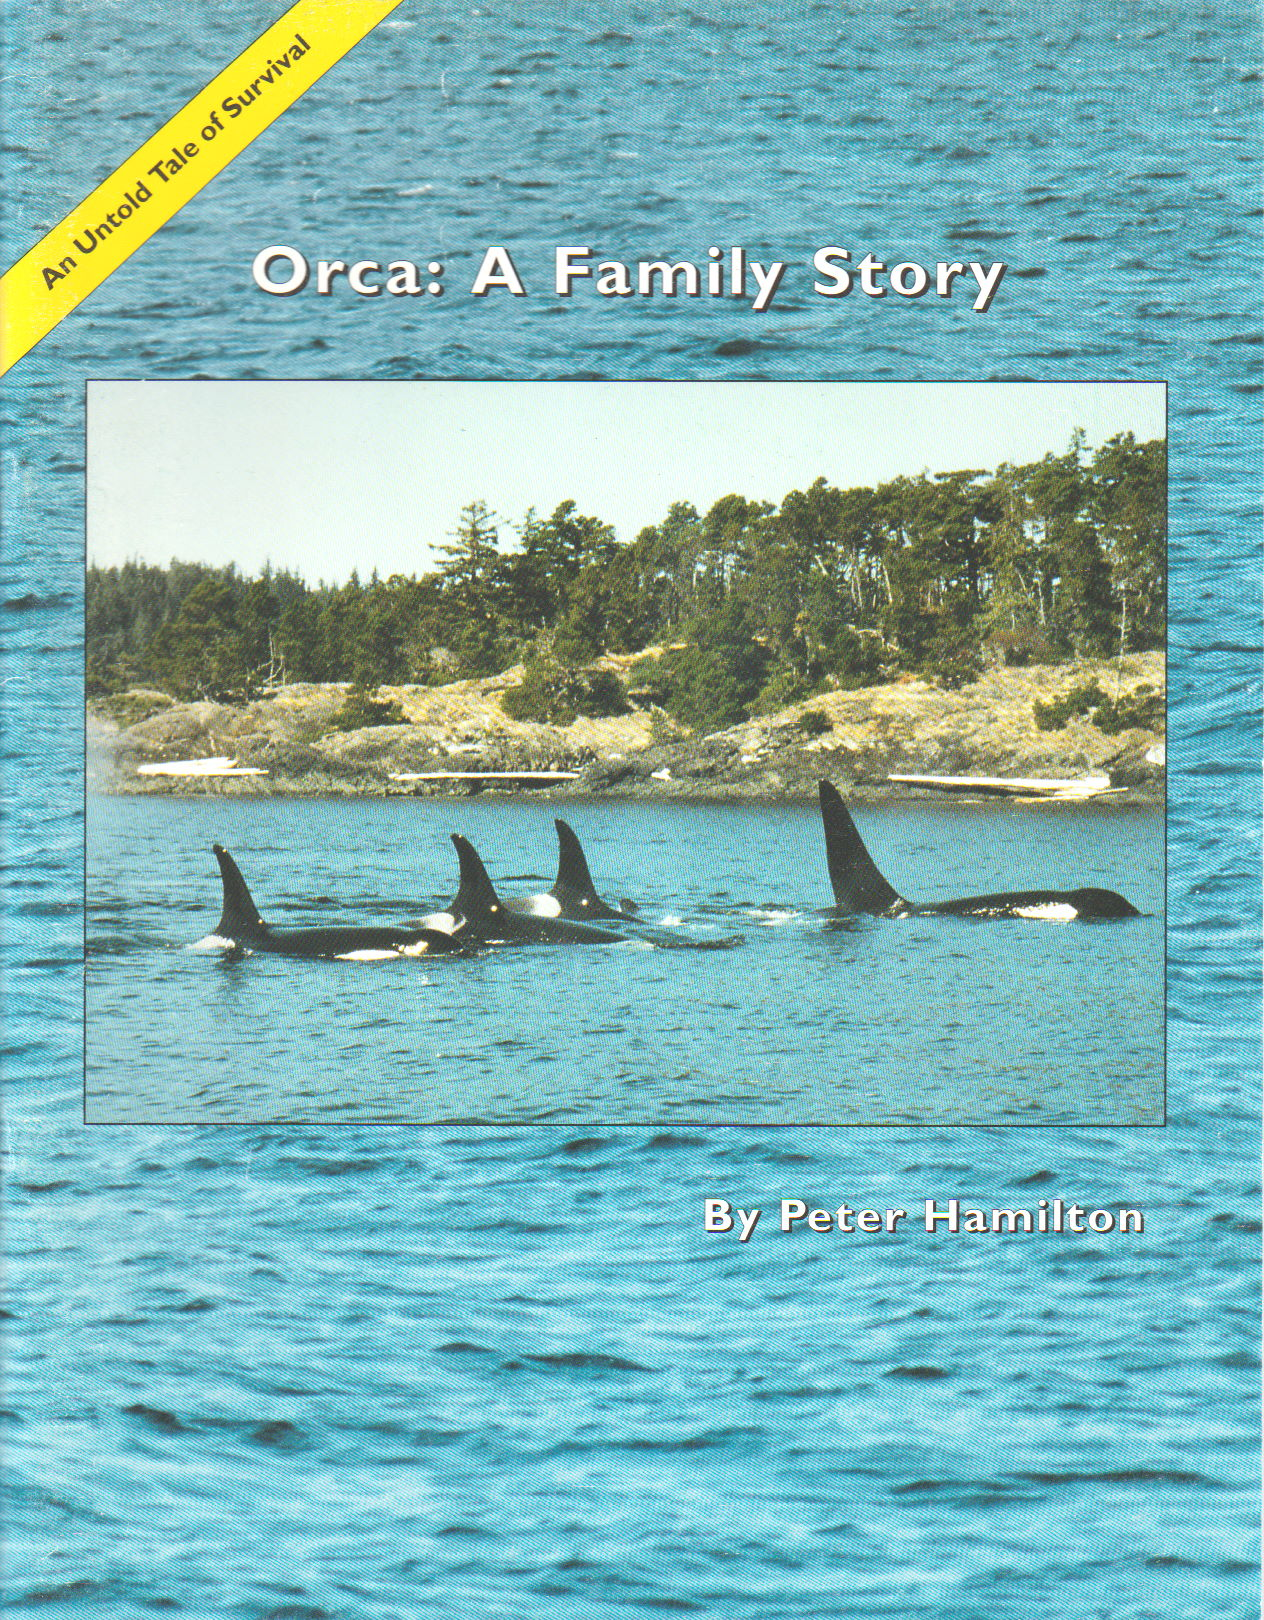 Help Celebrate Orca Action Month! June 2020!